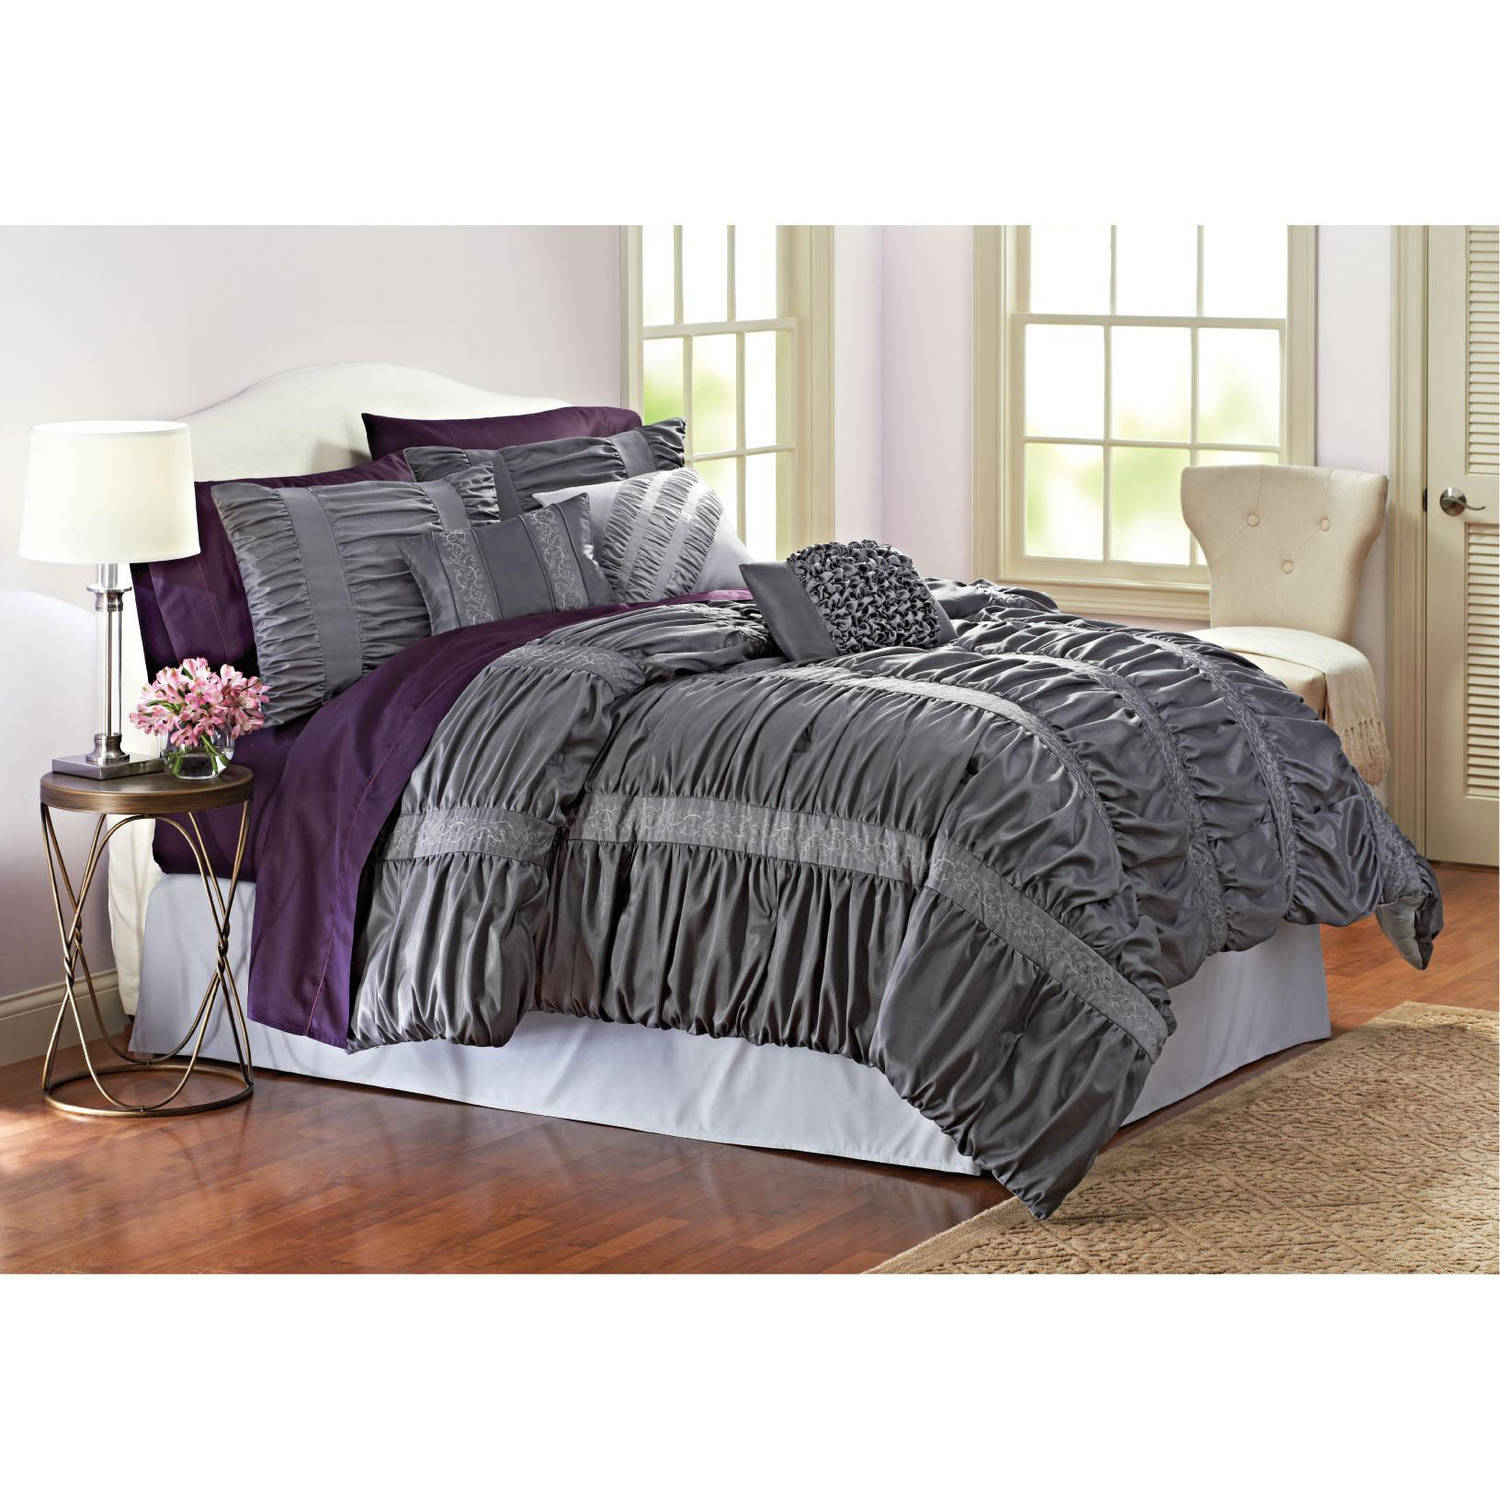 Better Homes and Gardens 7-Piece Embroidered Ruching Full Bedding Comforter Set